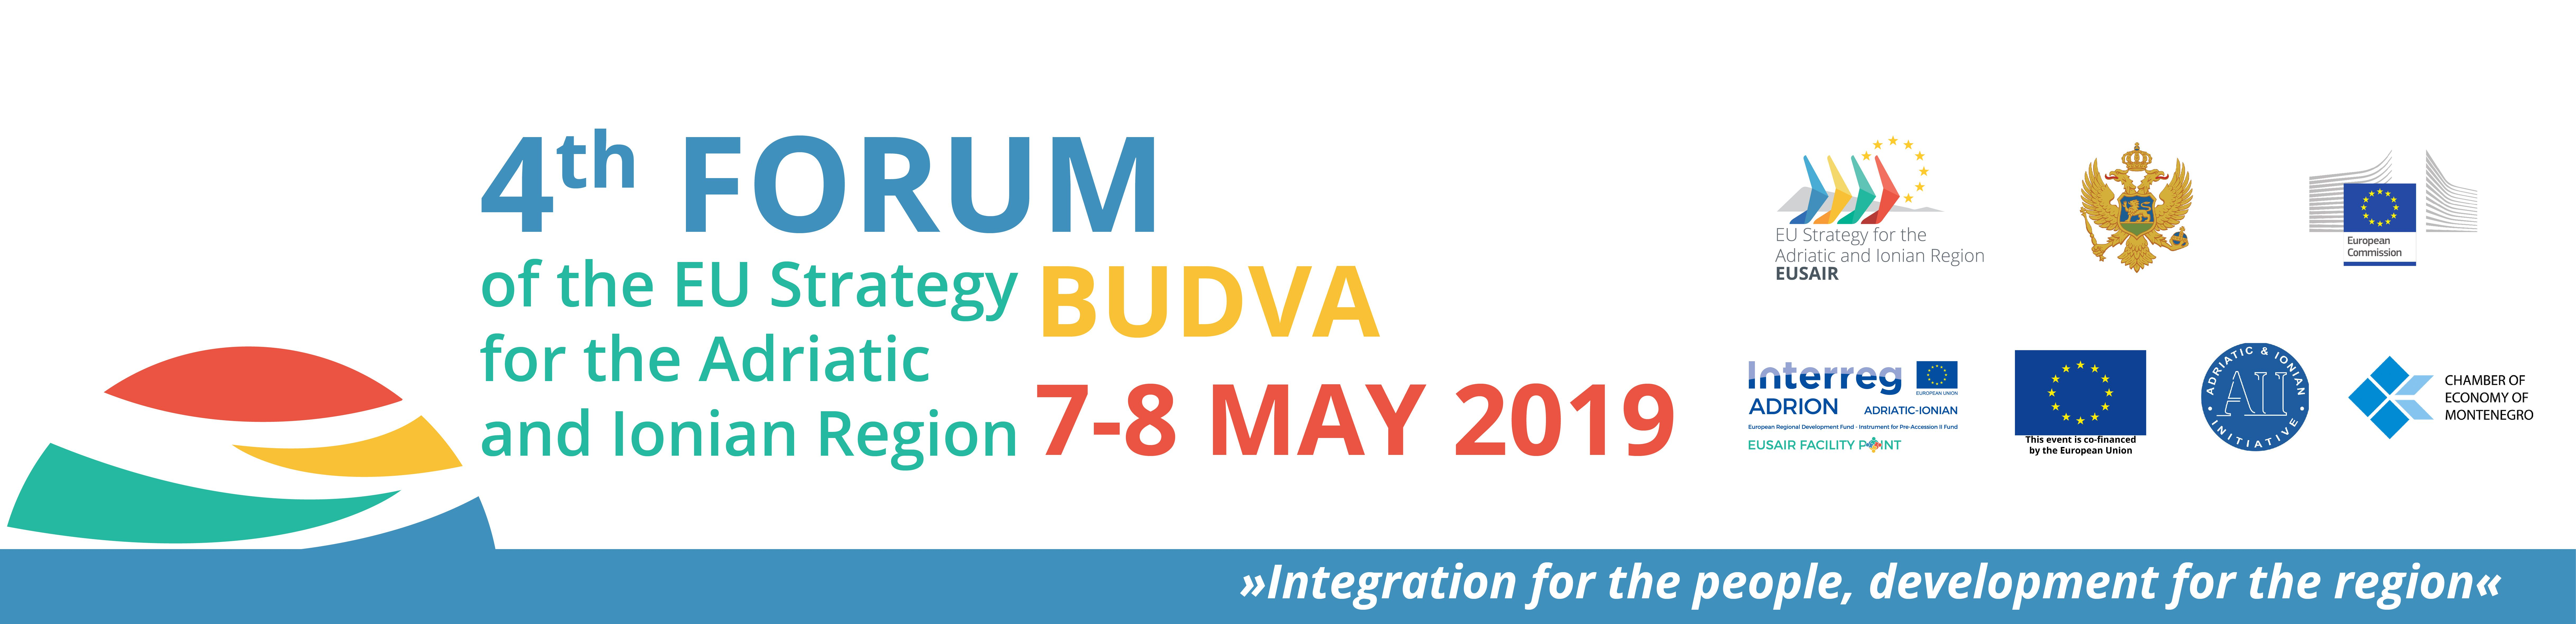 REGISTRATION OPENED - 4th EUSAIR Forum and 2nd Fora of the Adriatic and Ionian Chambers of Commerce, Cities and Universities